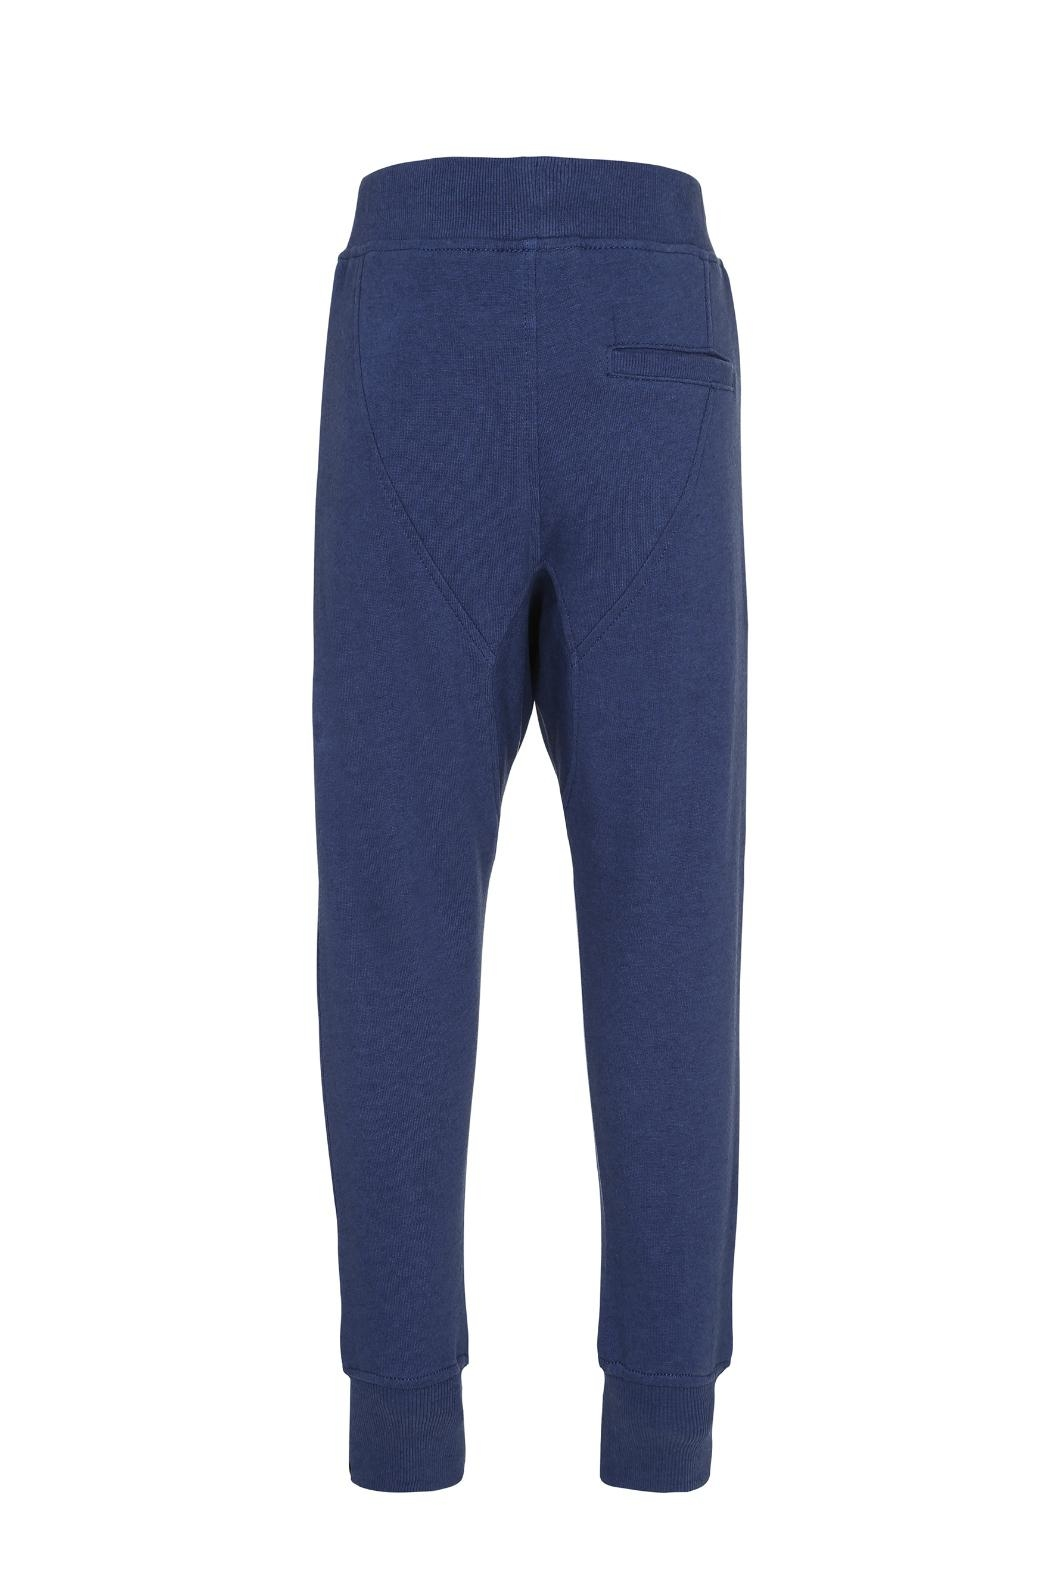 Molo Ashton Infinity Trousers - Front Full Image